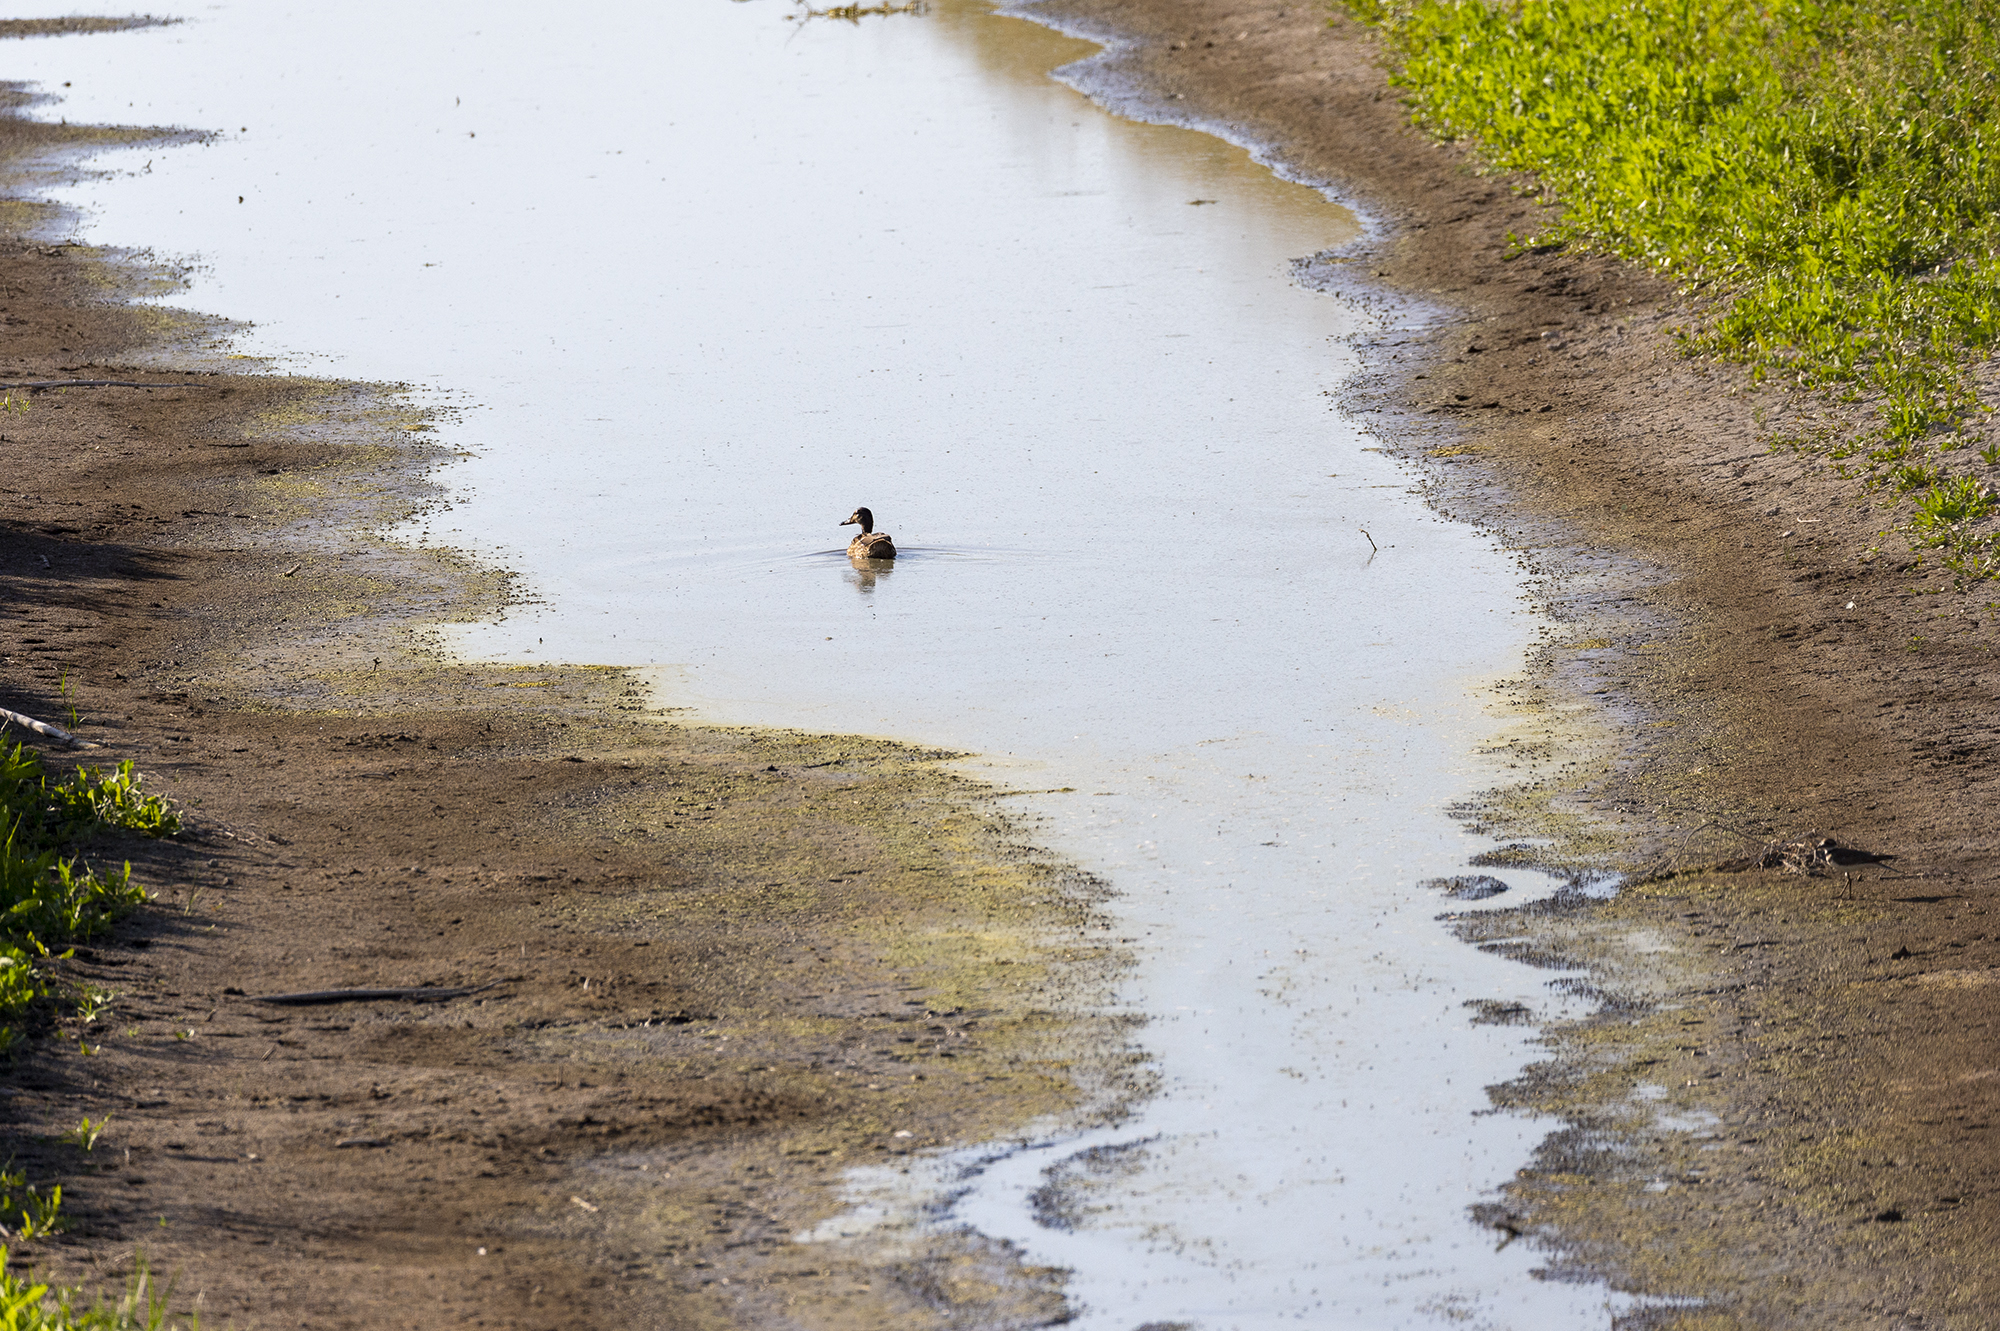 A flightless duck swims in the receding waters of a ditch